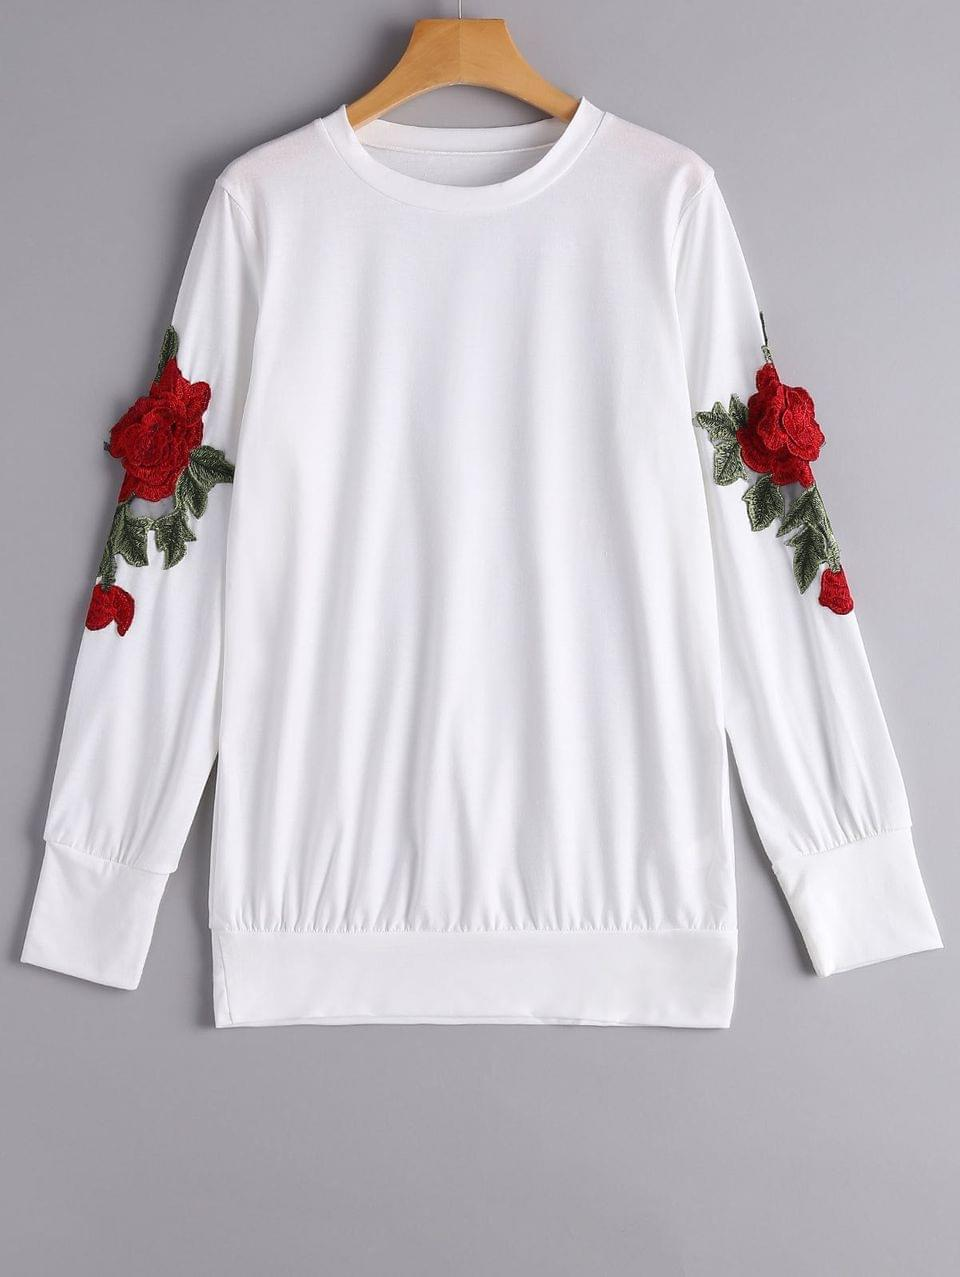 Women's Loose Floral Embroidered Patches Sweatshirt - White M